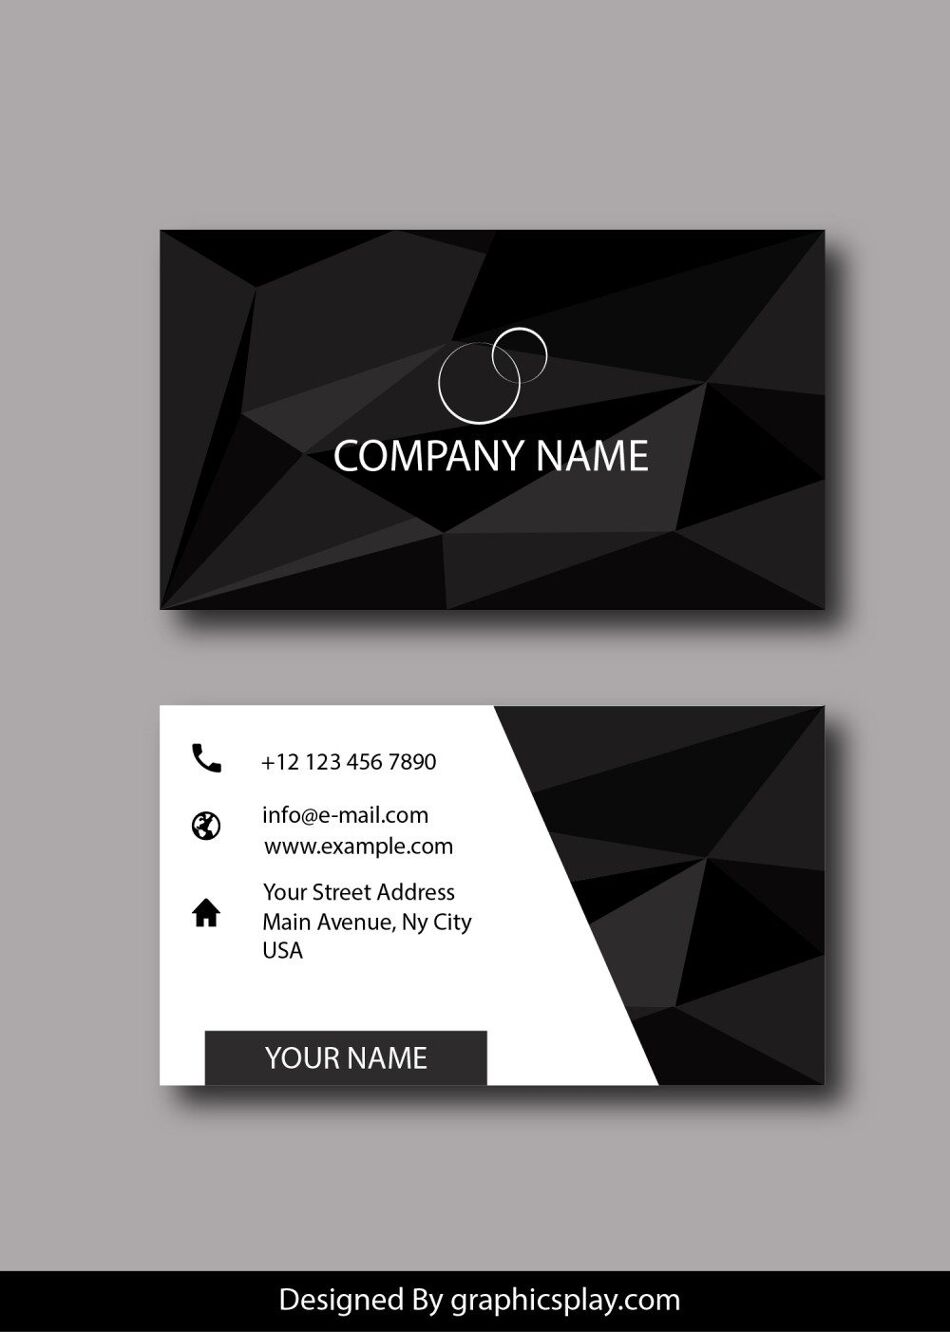 Business Card Design Vector Template - ID 1785 1